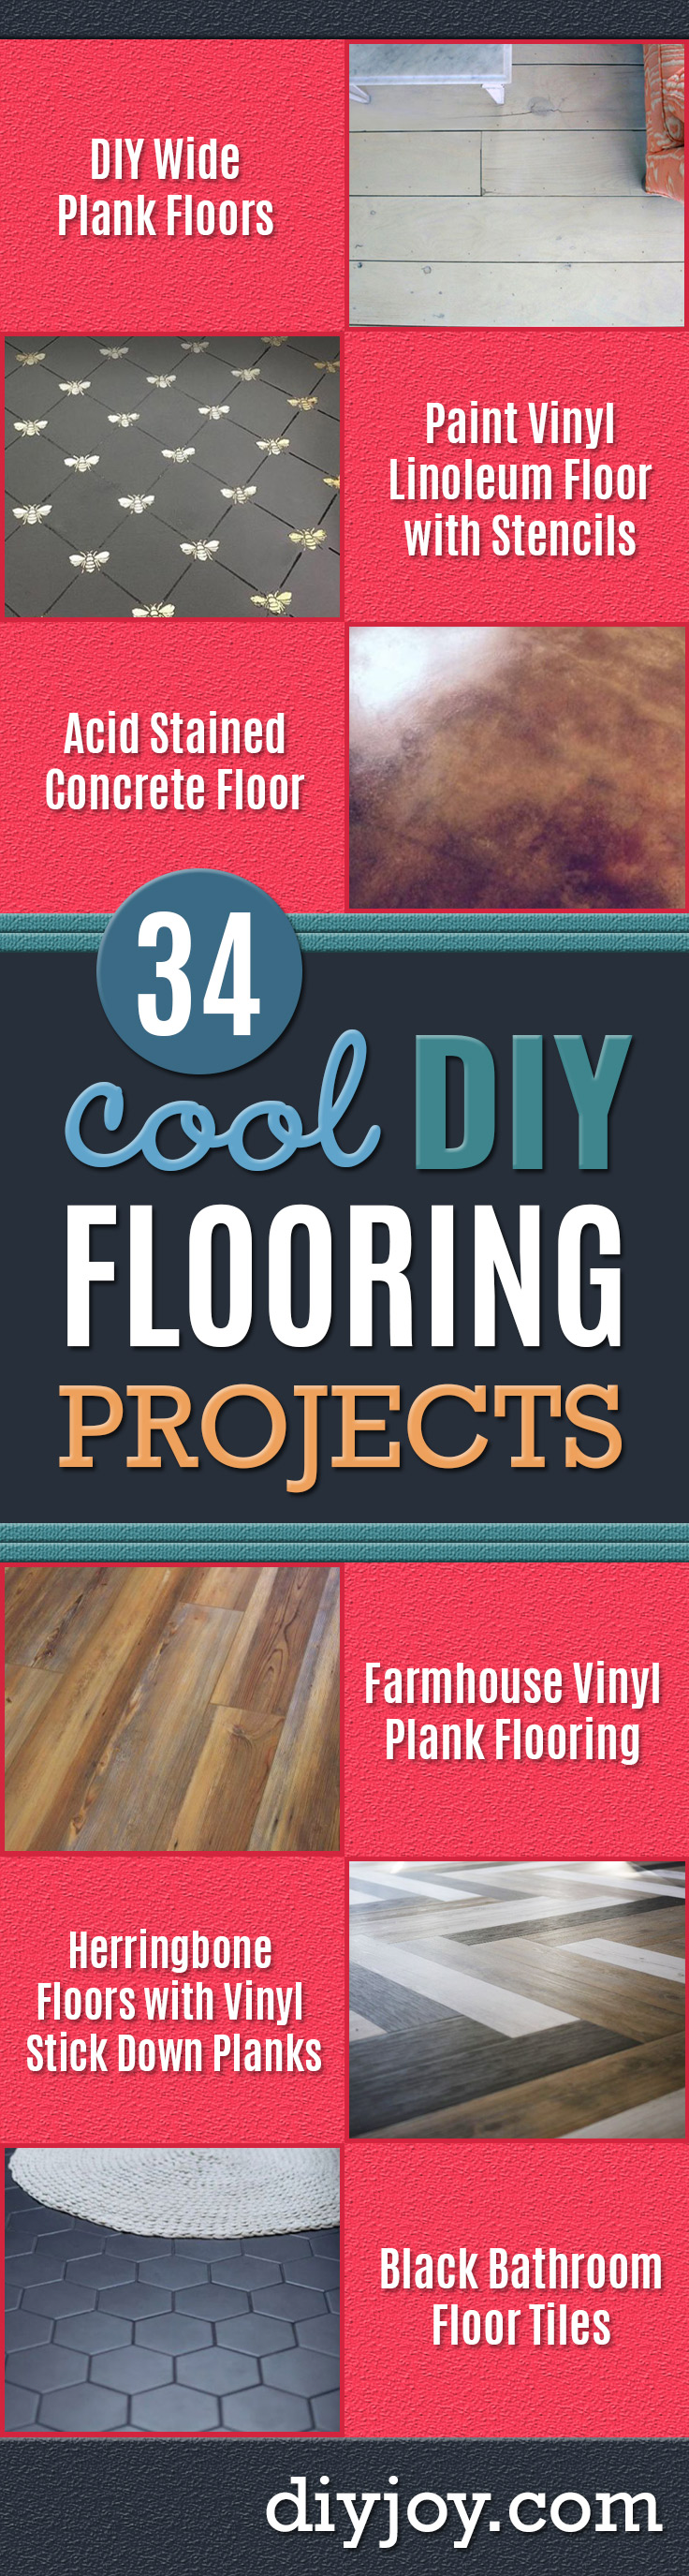 DIY Flooring Projects - Cheap Floor Ideas for Those On A Budget - Inexpensive Ways To Refinish Floors With Concrete, Laminate, Plywood, Peel and Stick Tile, Wood, Vinyl - Easy Project Plans and Unique Creative Tutorials for Cool Do It Yourself Home Deco